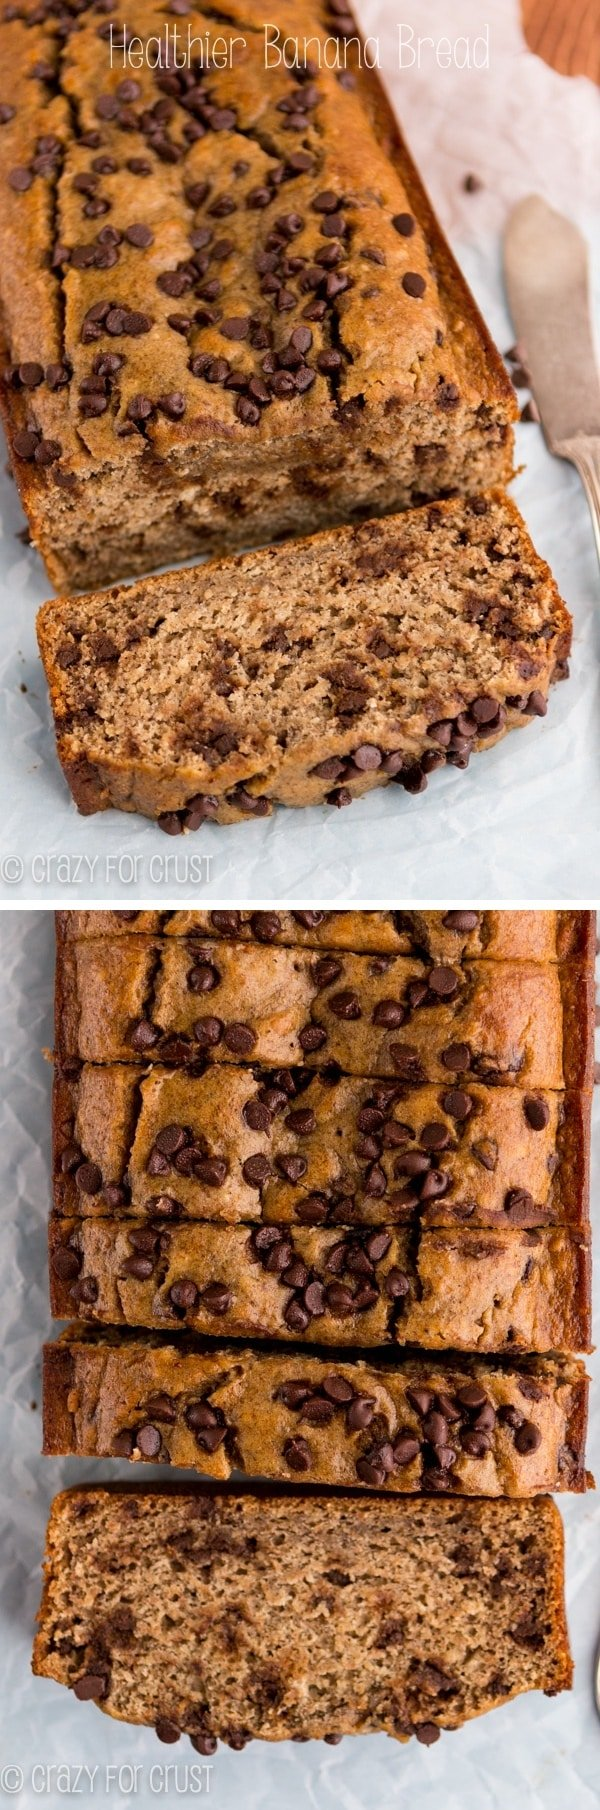 Healthier Banana Bread Recipe | crazyforcrust.com